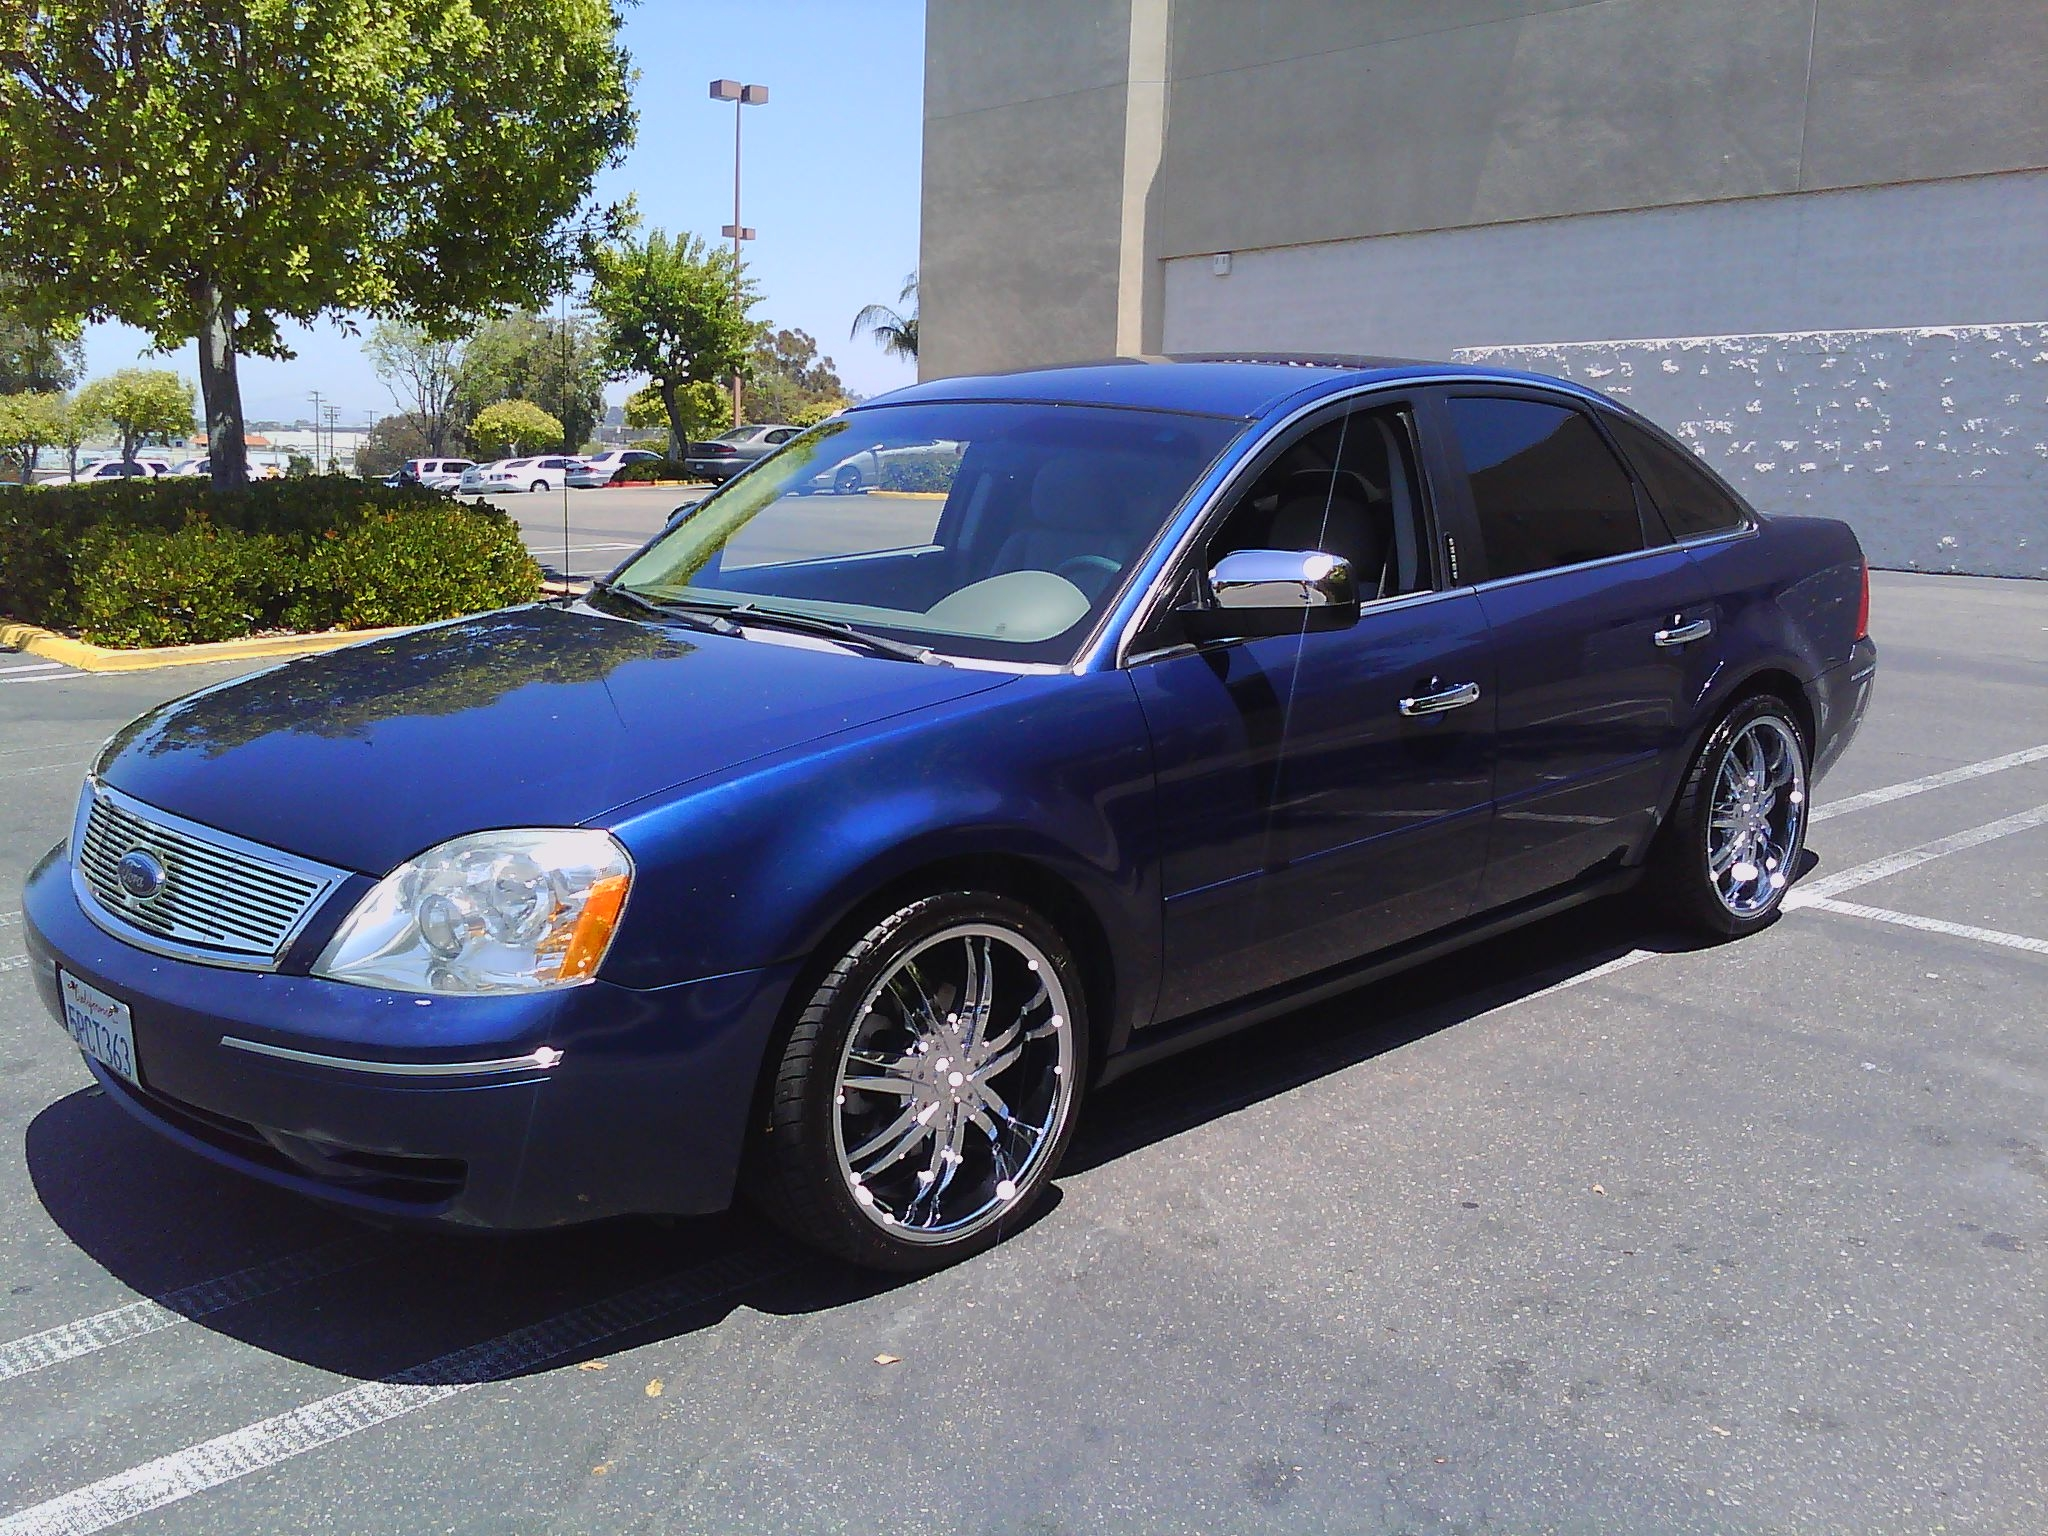 Ford five hundred 2006 pictures 4